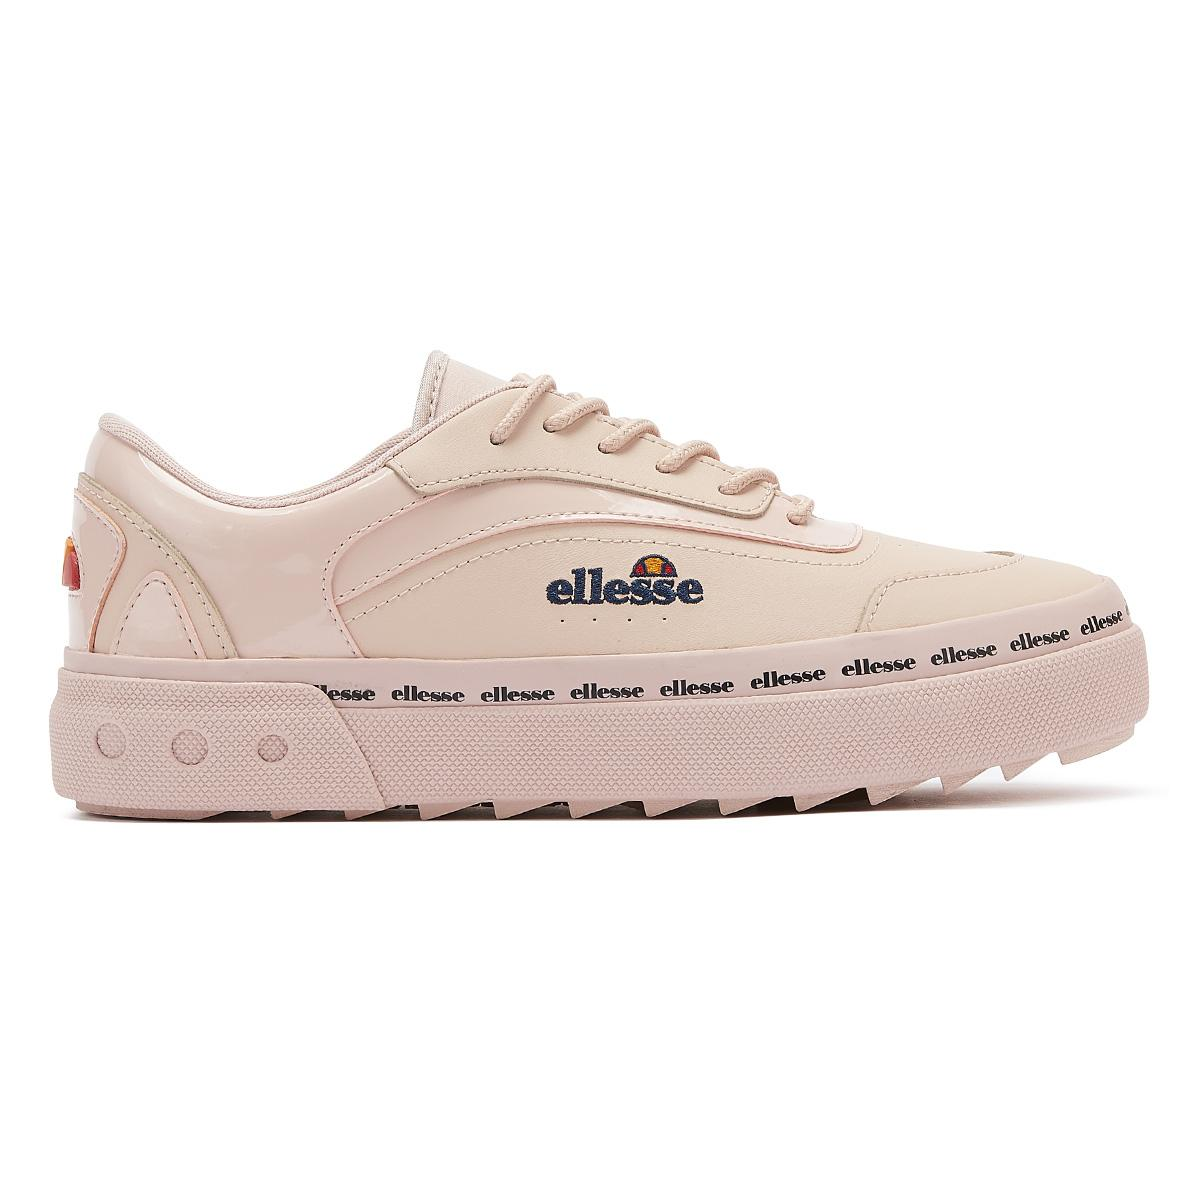 Ellesse Alzina Womens Pink Leather Trainers Ladies Sport Casual Shoes